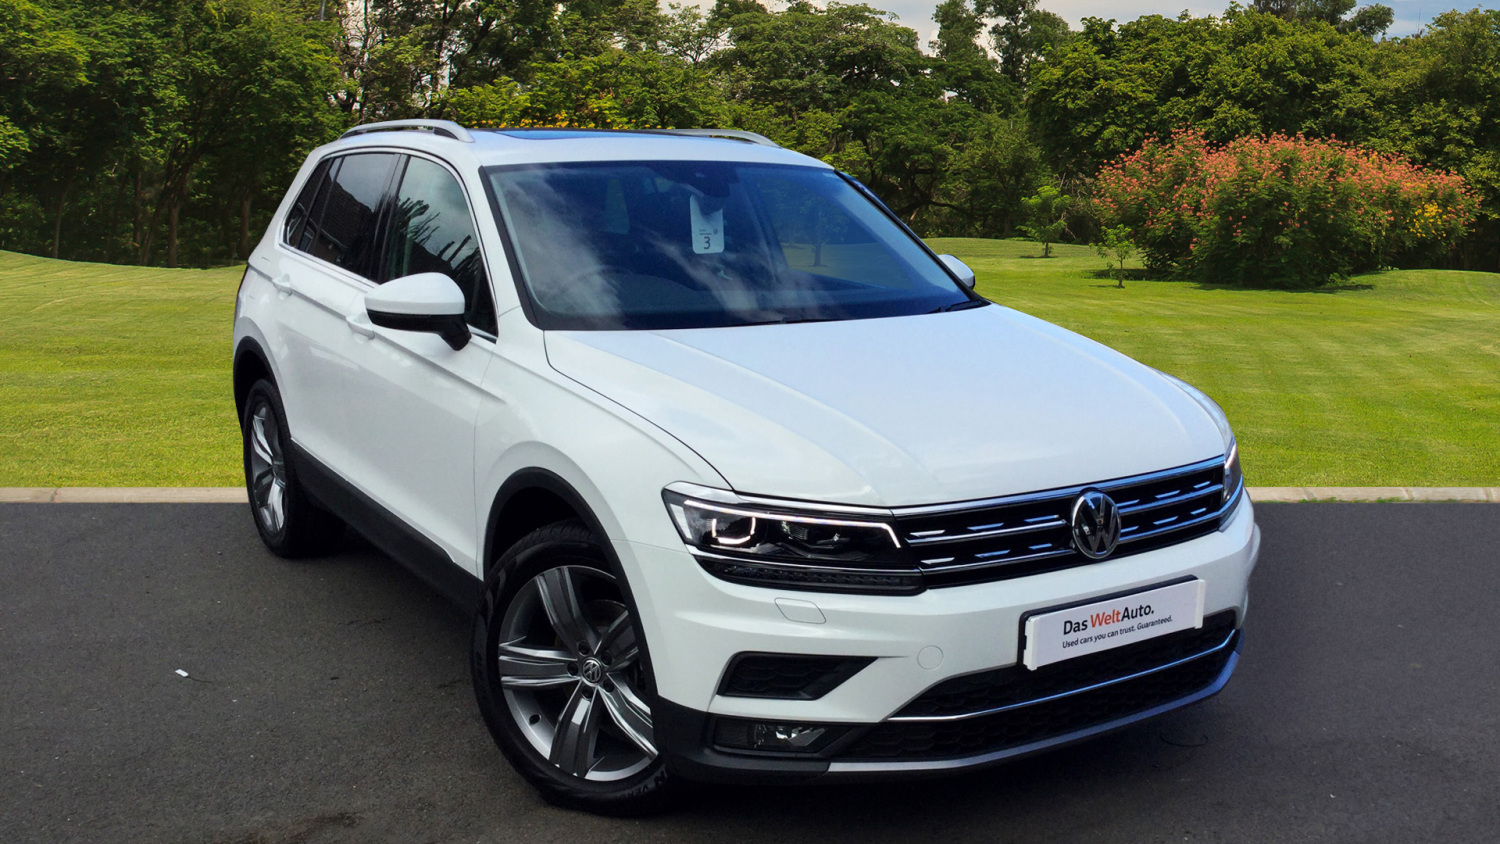 used volkswagen tiguan 2 0 tdi bmt 150 4motion sel 5dr dsg diesel estate for sale bristol. Black Bedroom Furniture Sets. Home Design Ideas